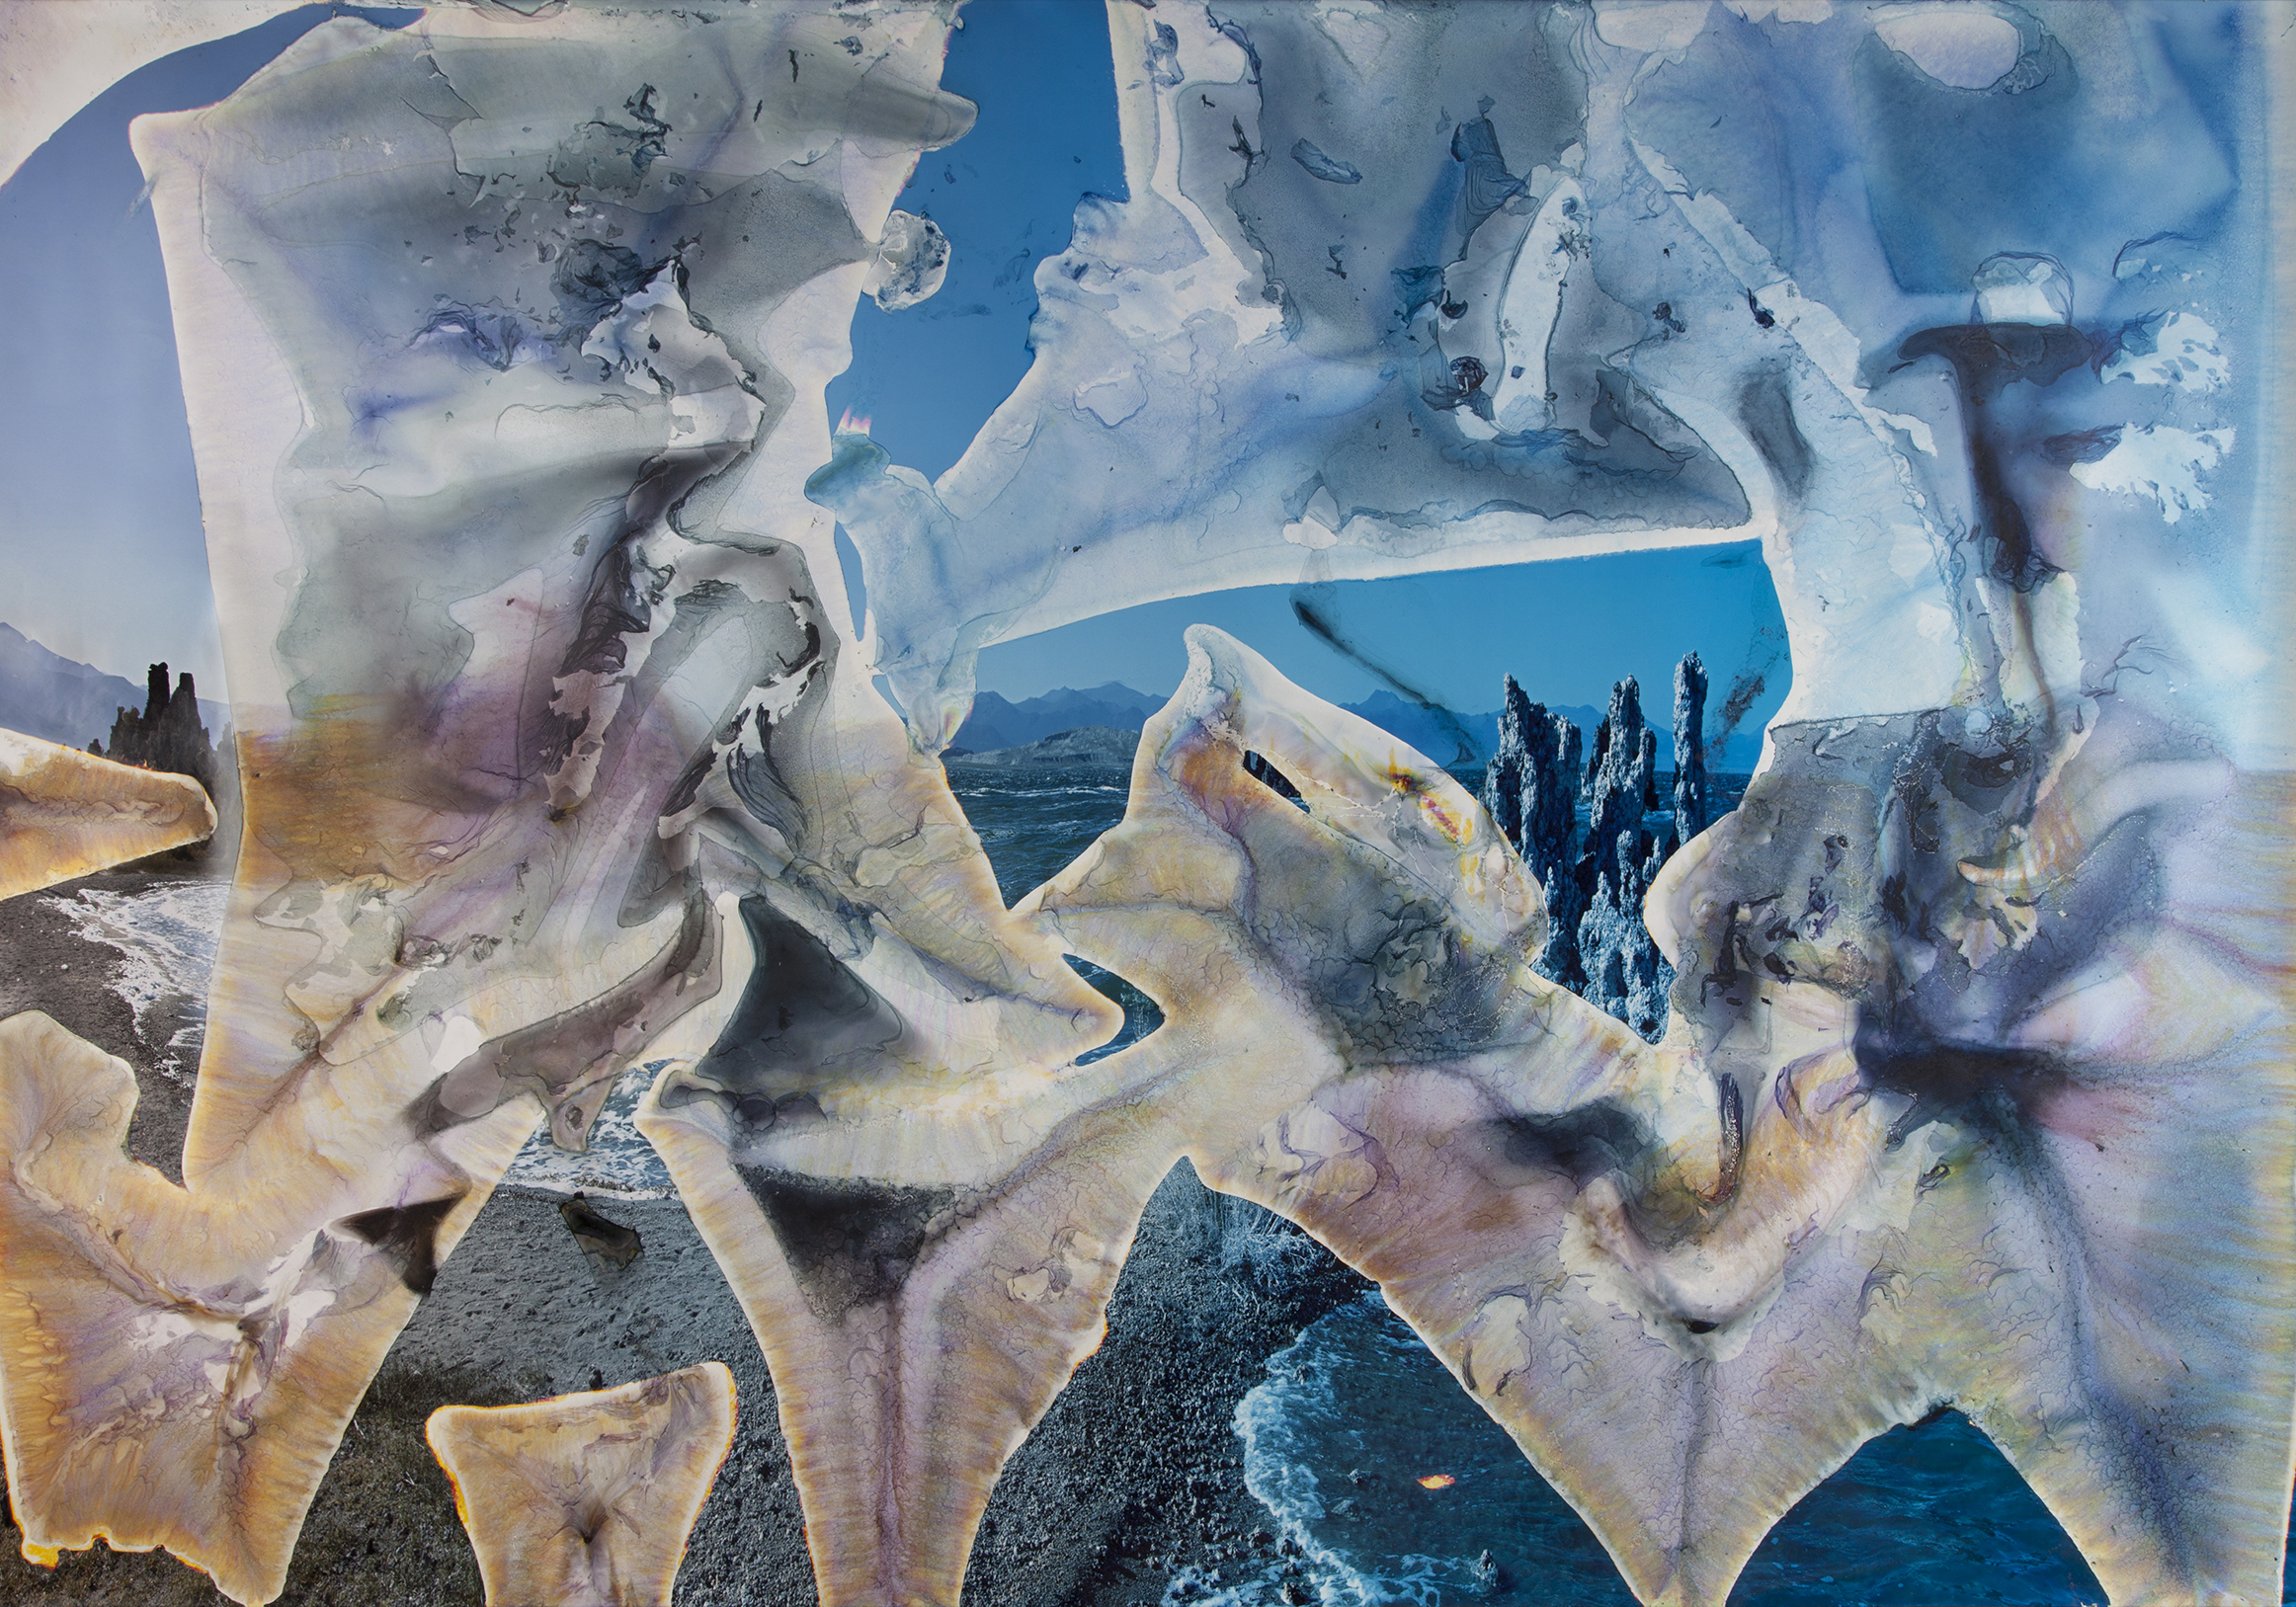 Matthew Brandt,  Mono Lake CA B4 , 2012,c-print soaked in Mono Lake water 72 x 105 inches,Collection ofMeredith and Brother Rutter,image courtesy of the artist and M+B Gallery, Los Angeles,